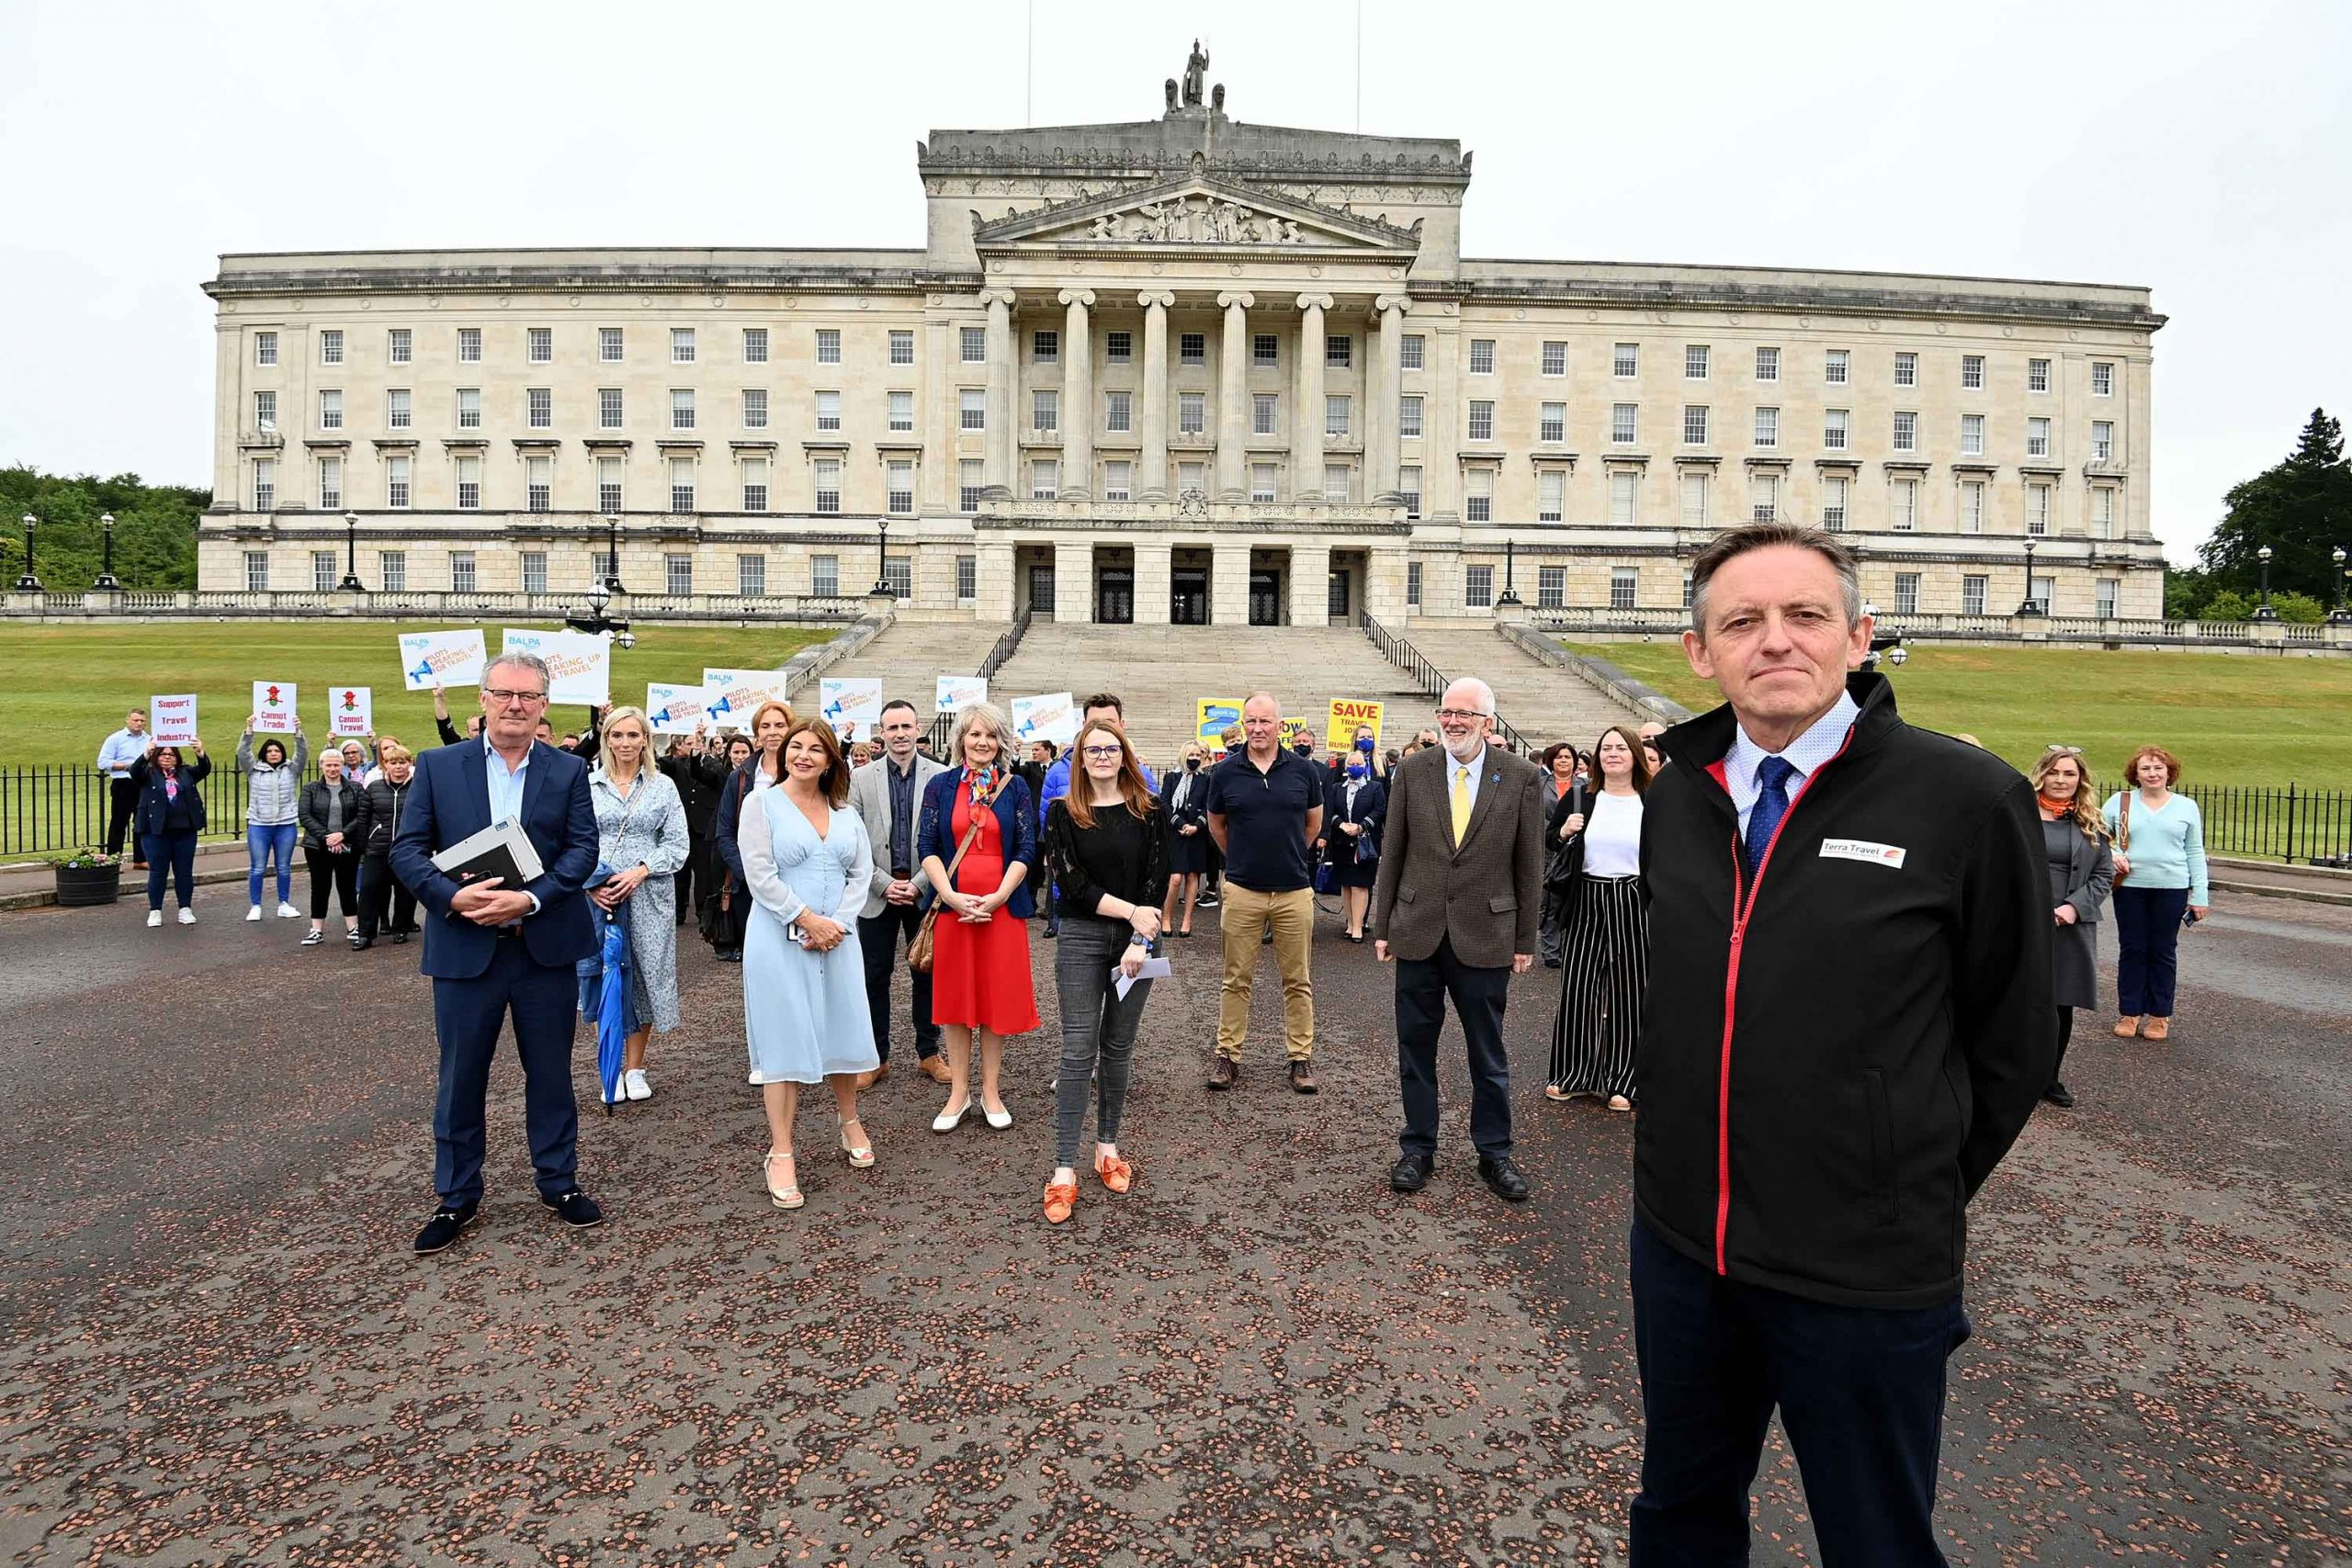 TIME FOR ACTION: Damian Murphy (front right), Chair of the Association of Northern Ireland Travel Agents (ANITA), and representatives from across the Northern Ireland travel trade - including travel agents, airlines, ferries and hospitality - met with local MLA's including (l-r) Mike Nesbitt (UUP), Sinead McLaughlin (SDLP), Caoimhe Archibald (Sinn Fein) and Stewart Dickson (Alliance) at Stormont this morning to lobby for the payment of support grants promised to NI travel agents back in March 2021 and the reopening of international travel.